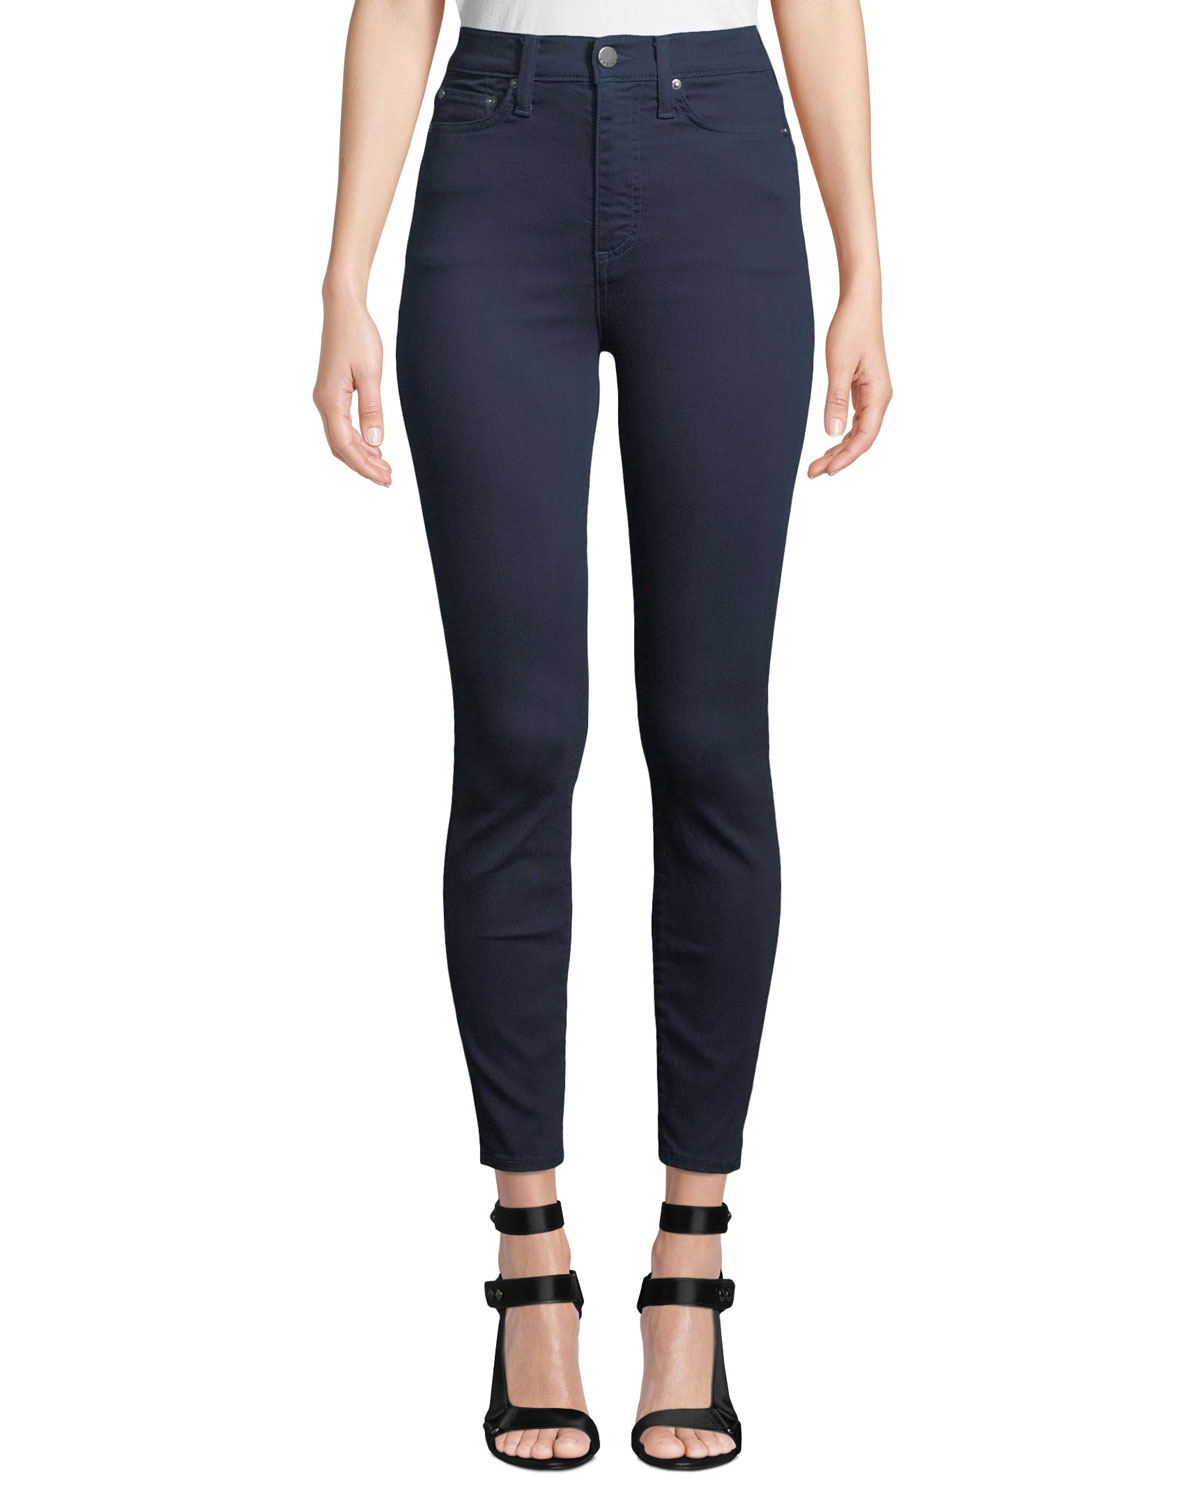 Good High Rise Exposed Button Fly Colored Jeans, Dark Blue